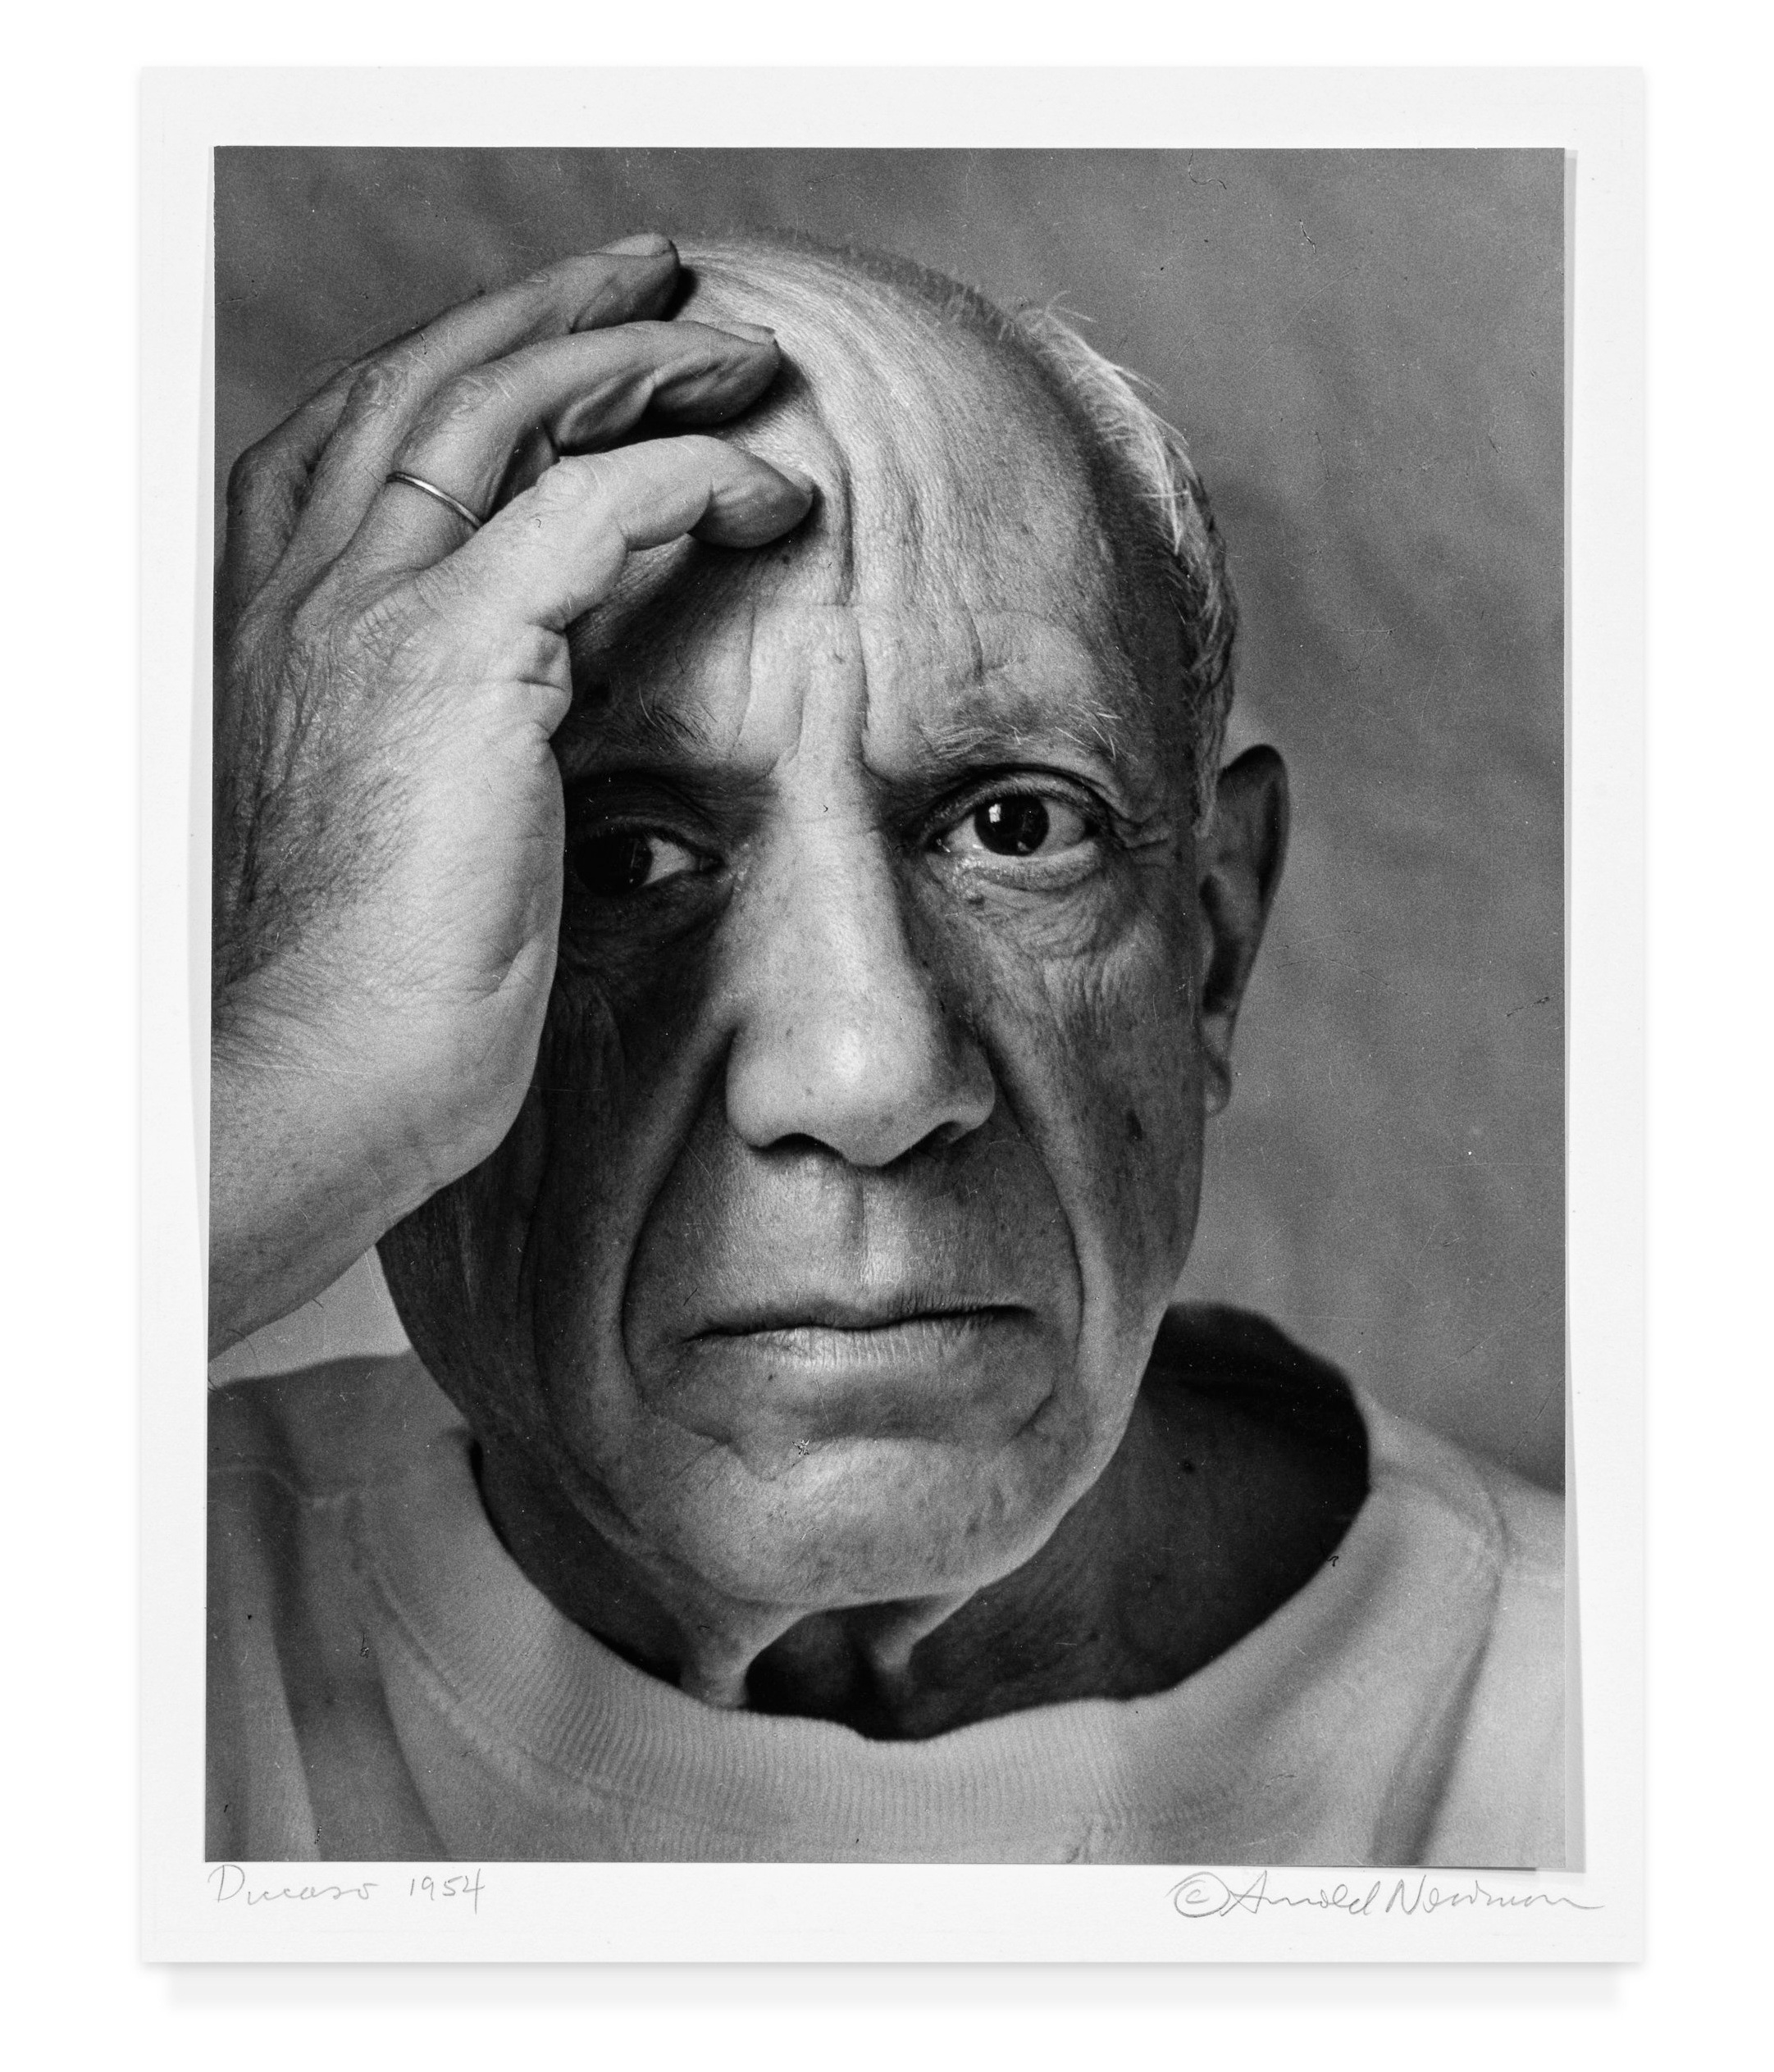 """Pablo Picasso from """"Seeing Arnold Newman"""" published by Radius Books © 2018"""